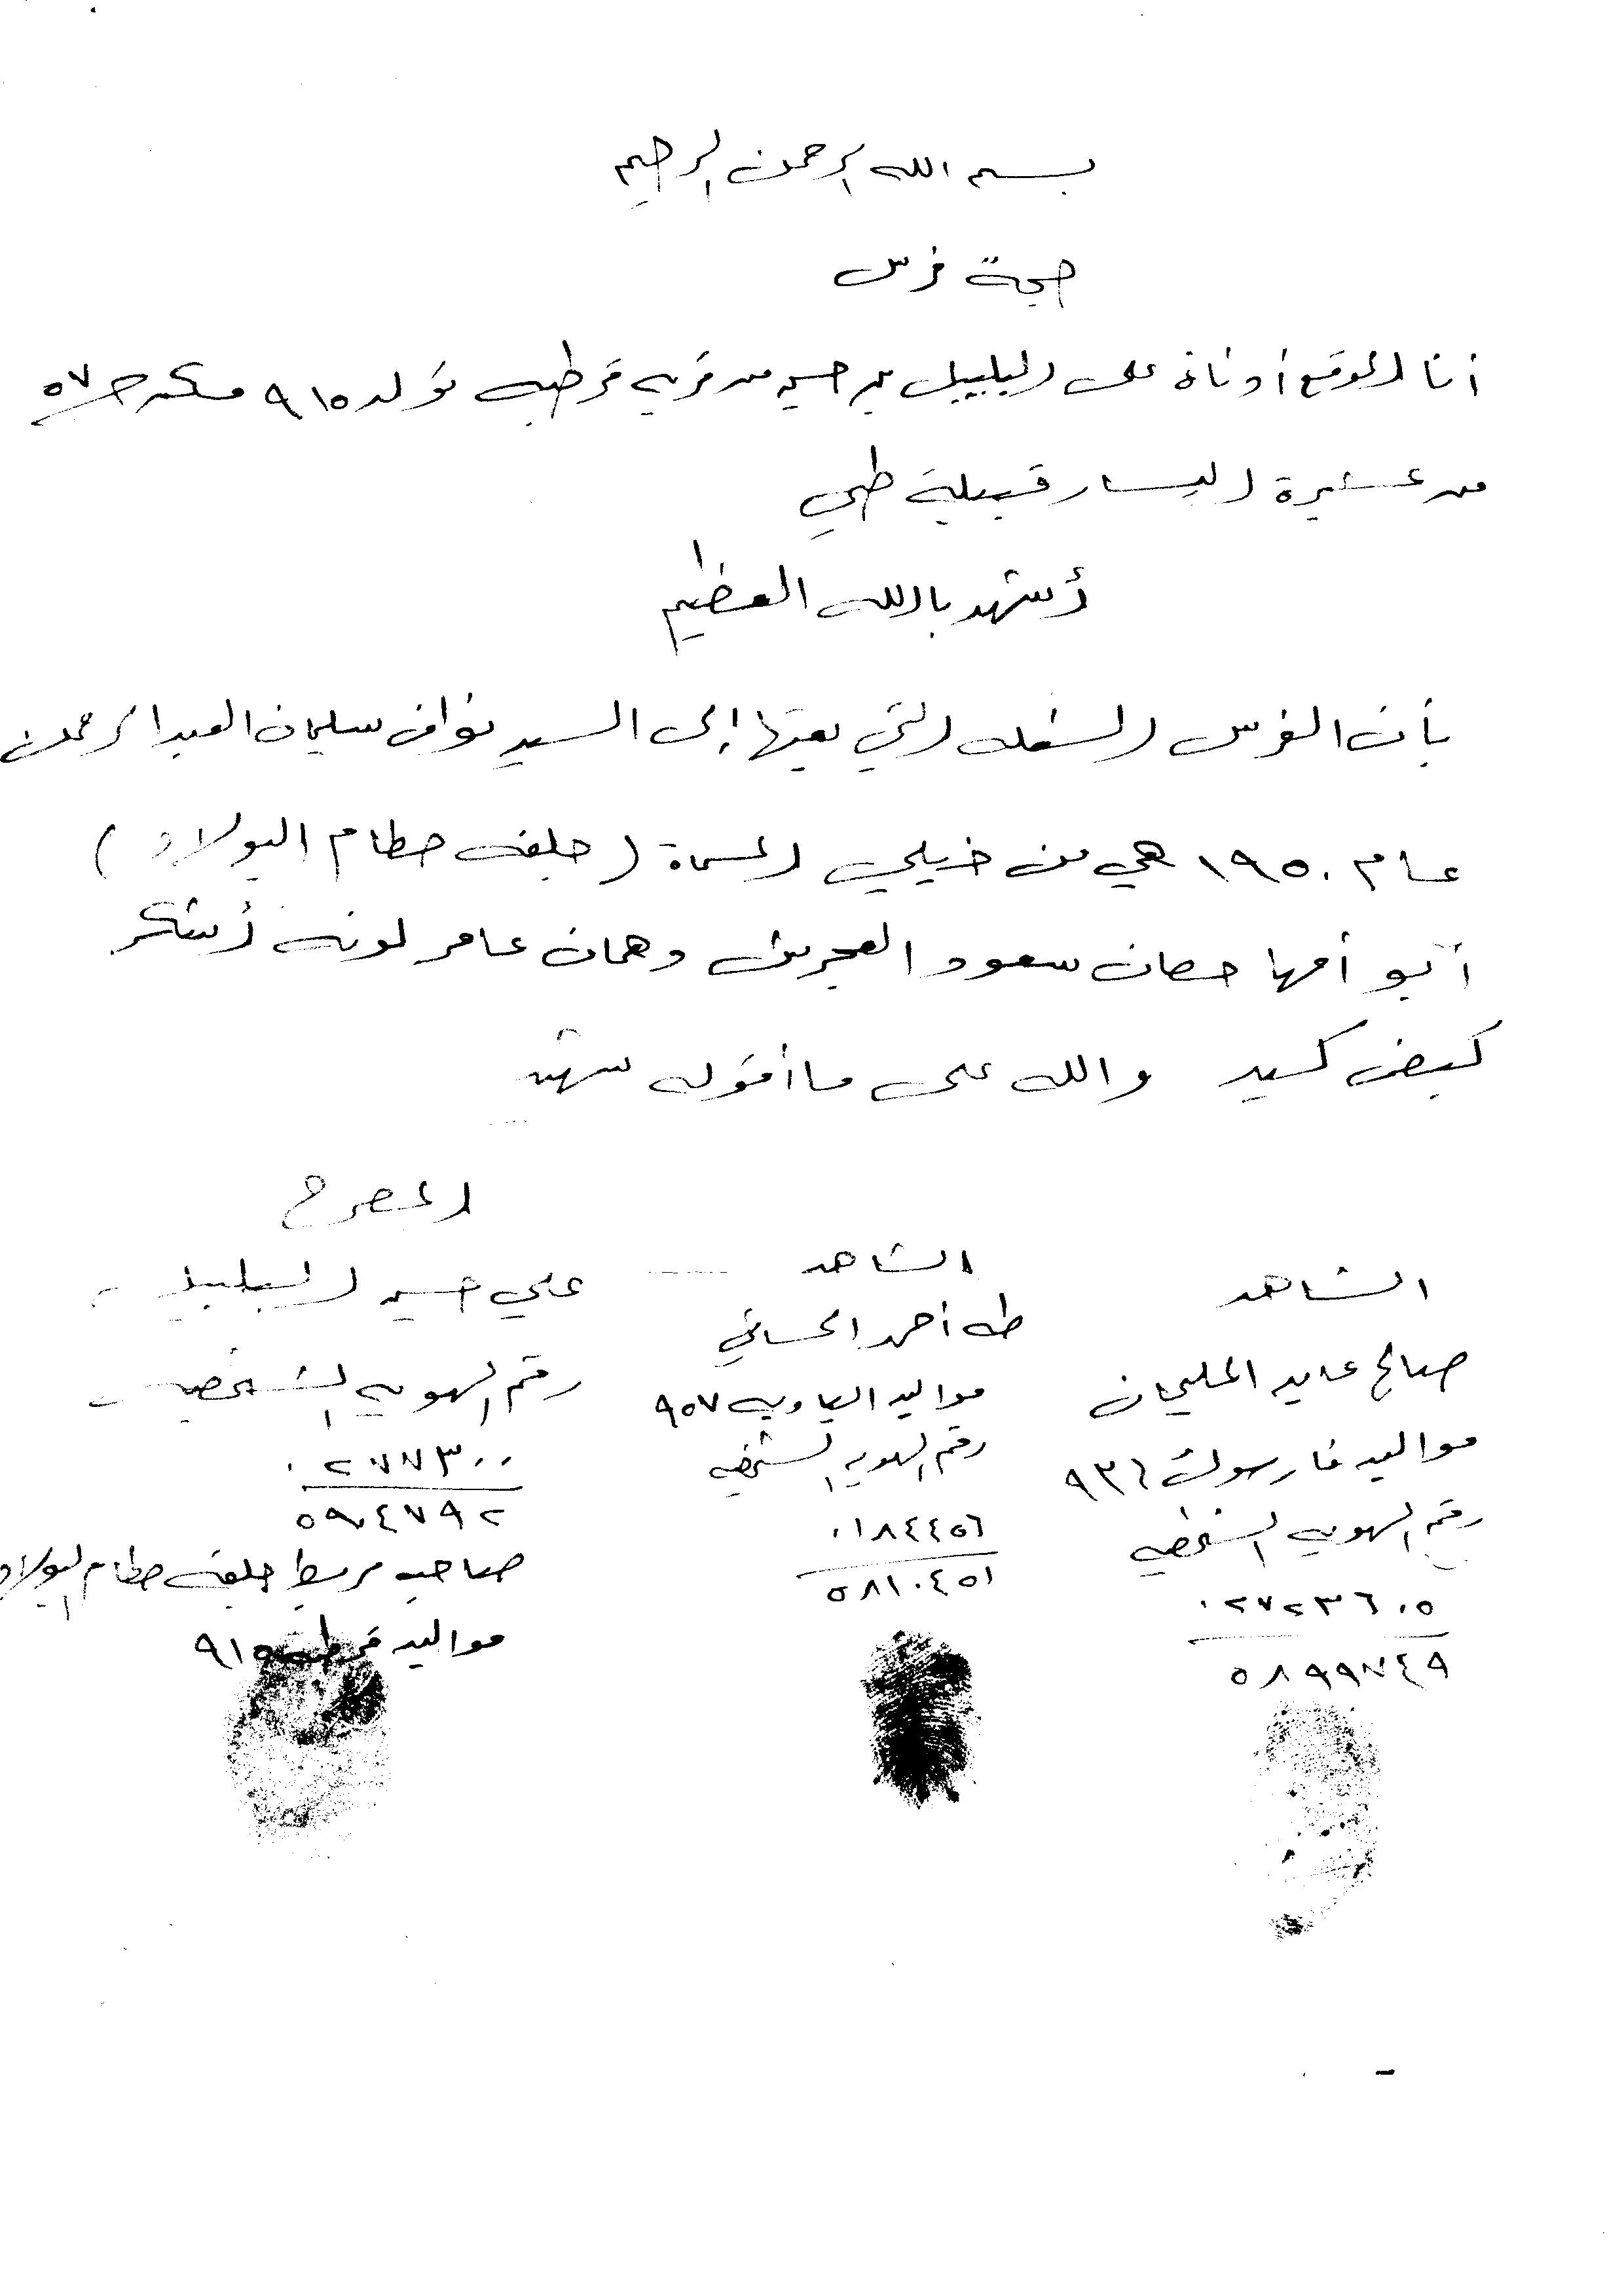 essay of zeitoun Be sure to annotate this assignment and include your questions in your annotations what will the essay be about for this essay, you will brainstorm a topic that is clearly presented in zeitoun we talked about some of the possible links to topics in the book earlier in the quarter, and we will continue to discuss these both in class and.